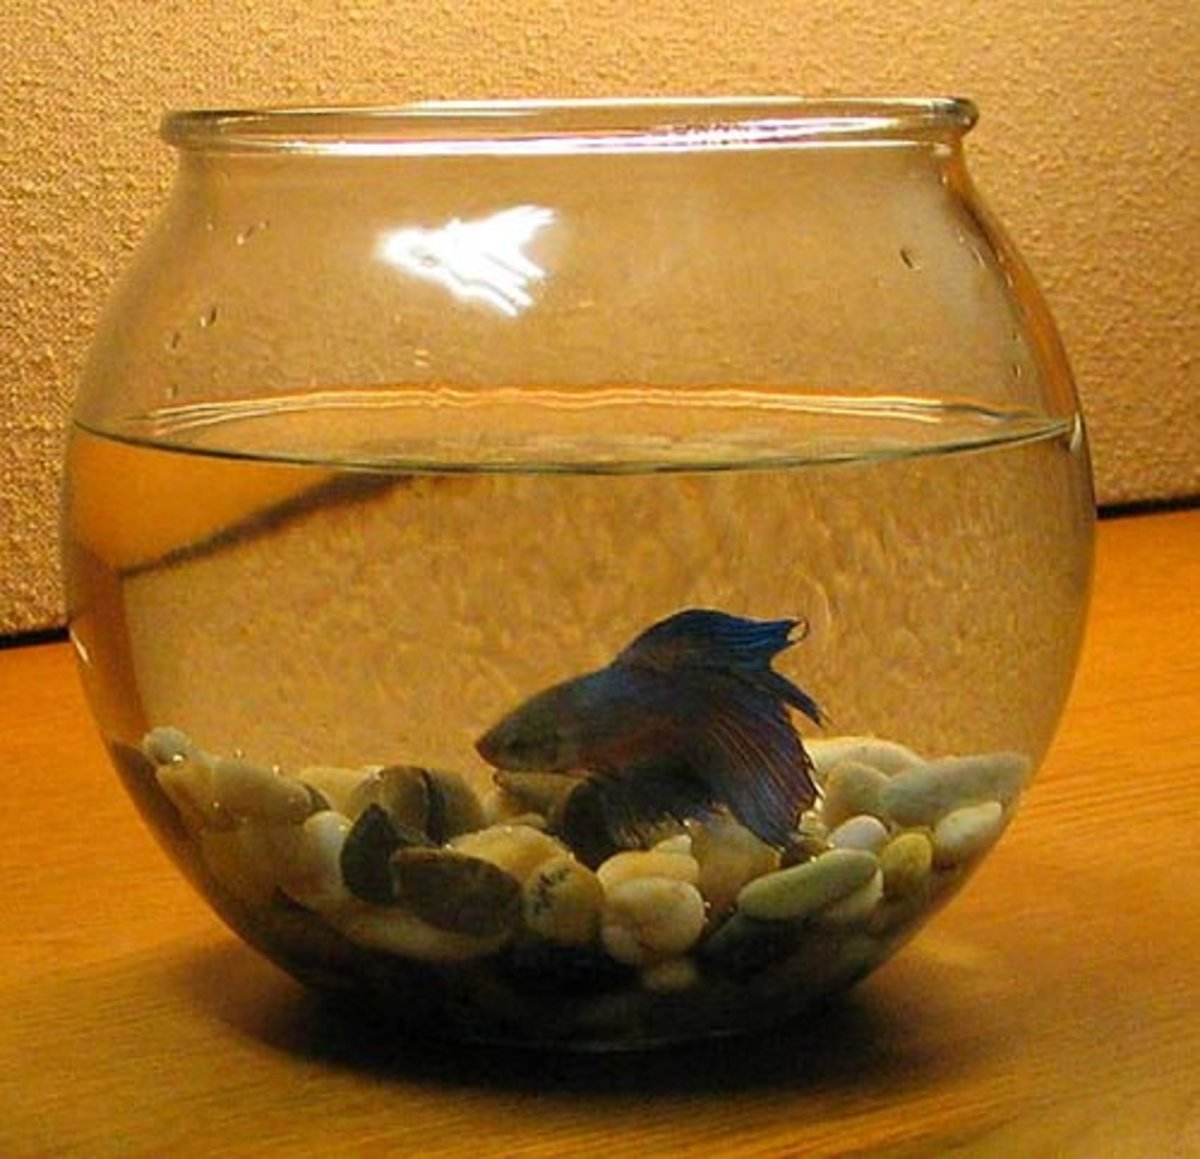 Why Fish Bowls Are Bad For Your Fish